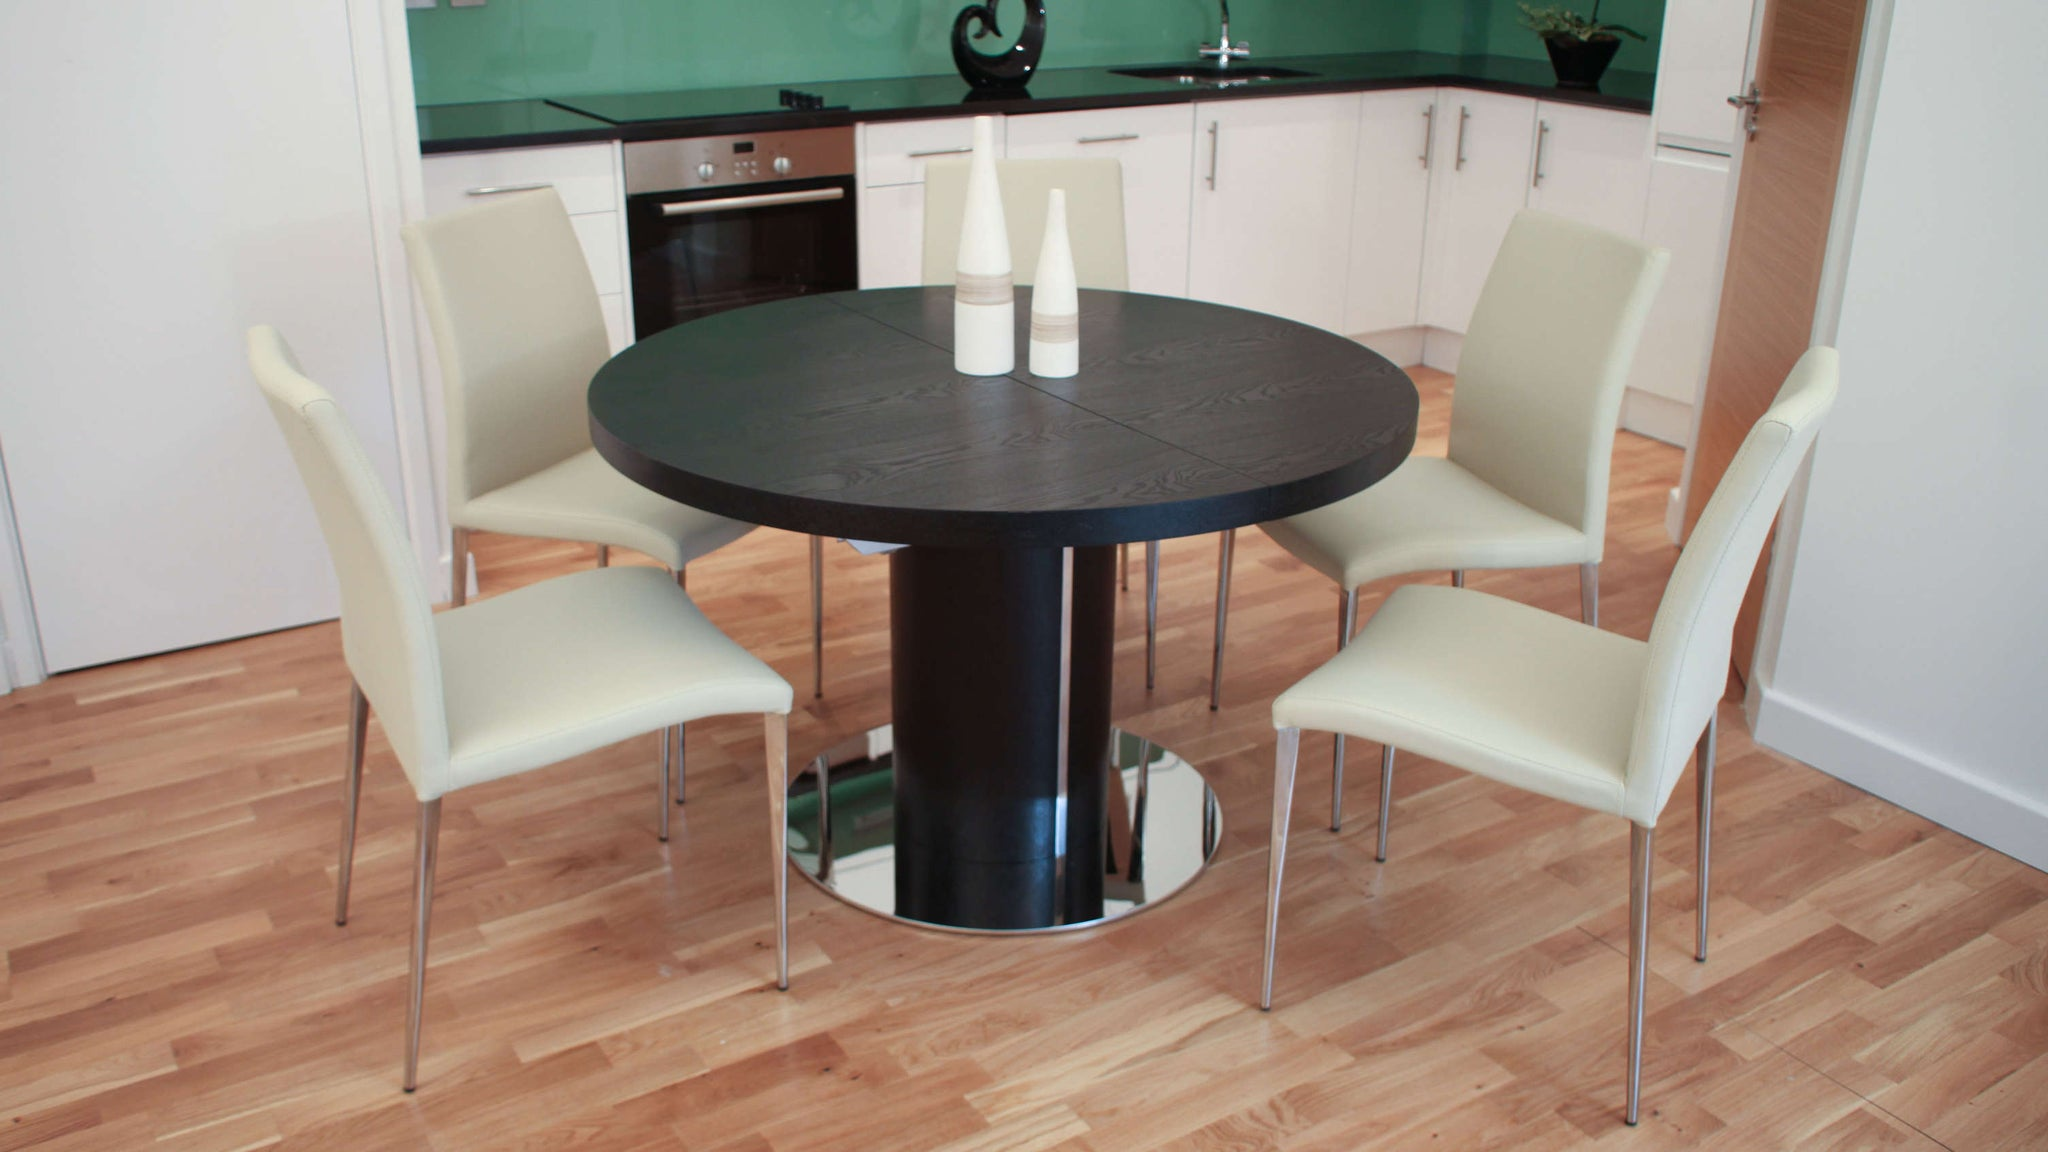 Stylish Black Extending Dining Table and Cream Chairs